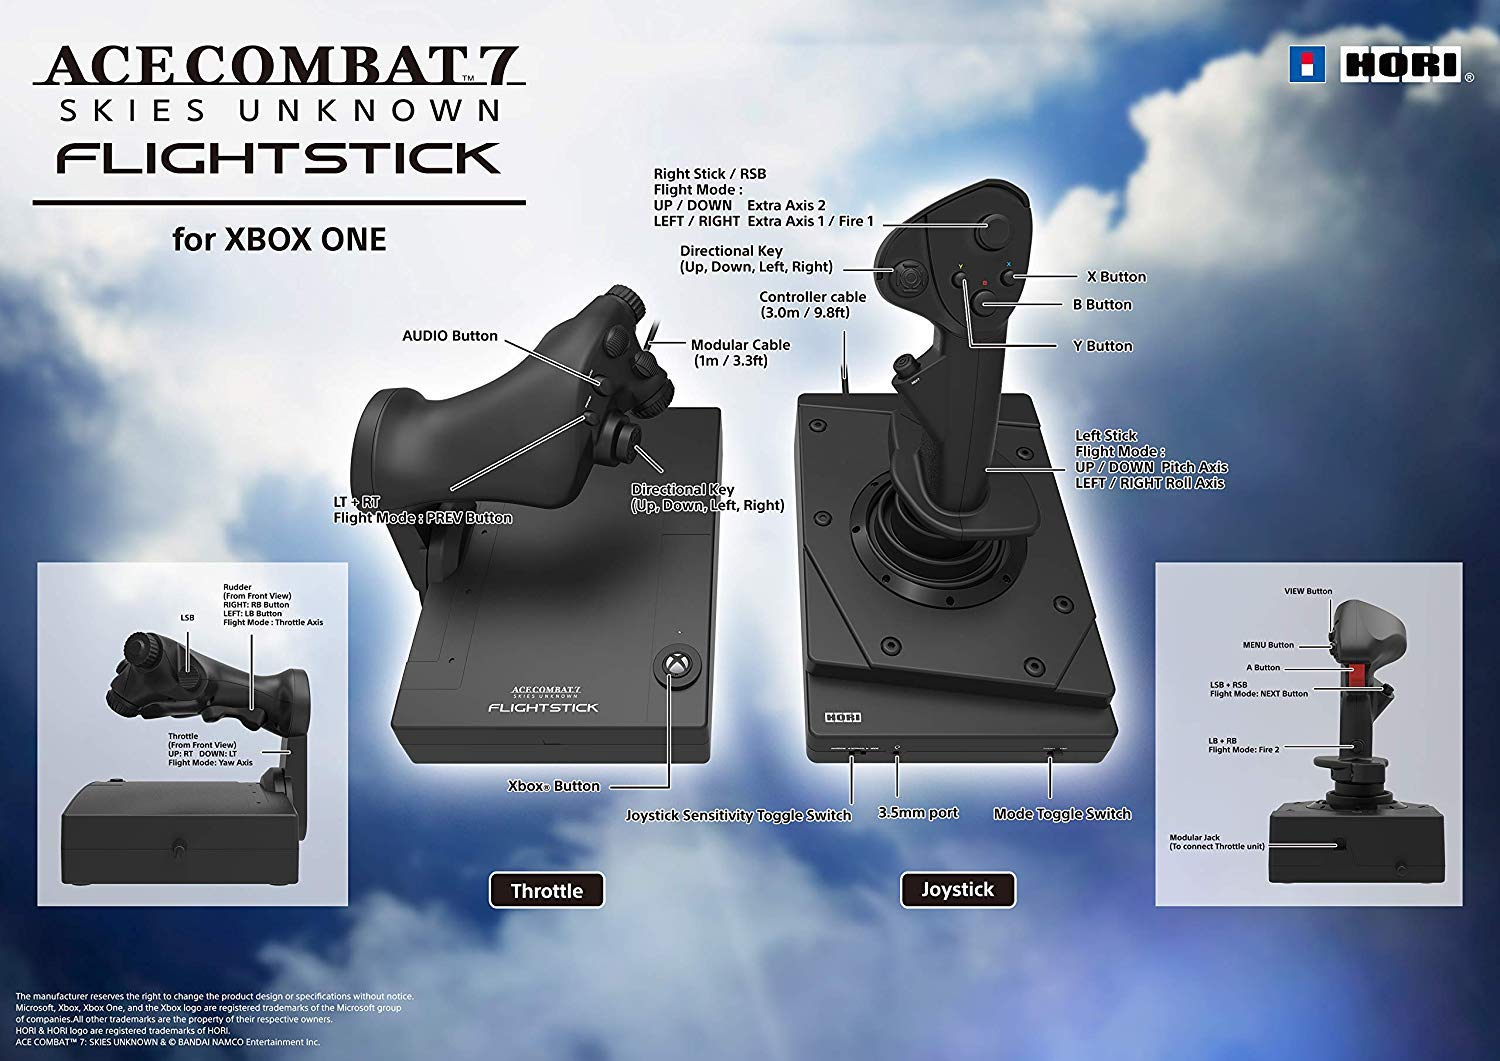 HORI Ace Combat 7 Hotas Flight Stick for Xbox One - Officially Licensed by Microsoft & Bandai Namco Entertainment - Xbox One by Hori (Image #6)